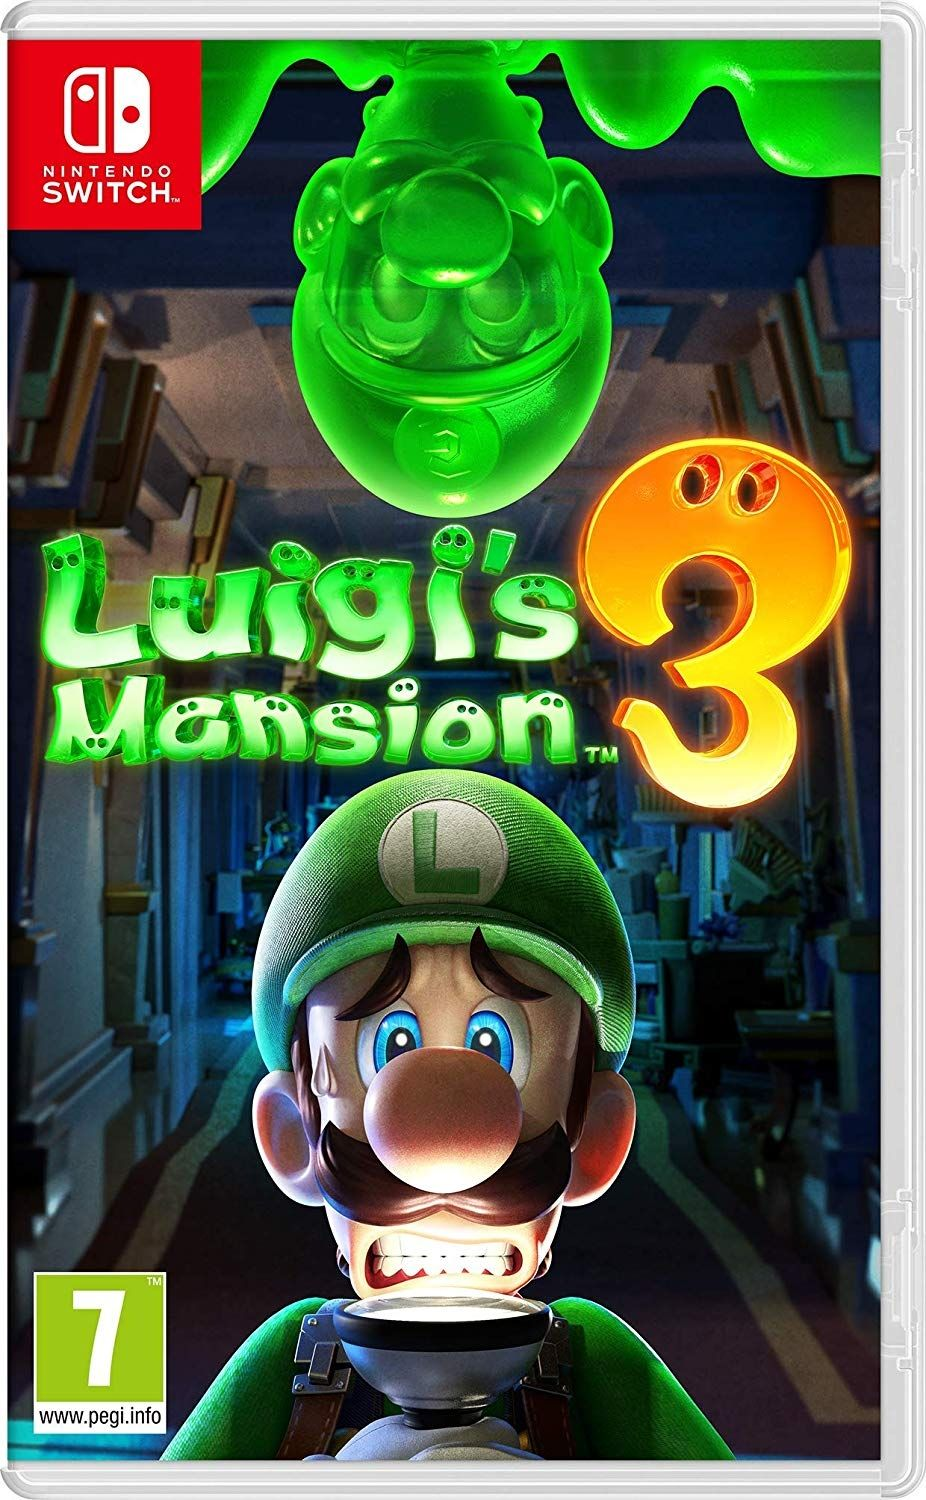 Luigi's Mansion 3 (Nintendo Switch) - 1